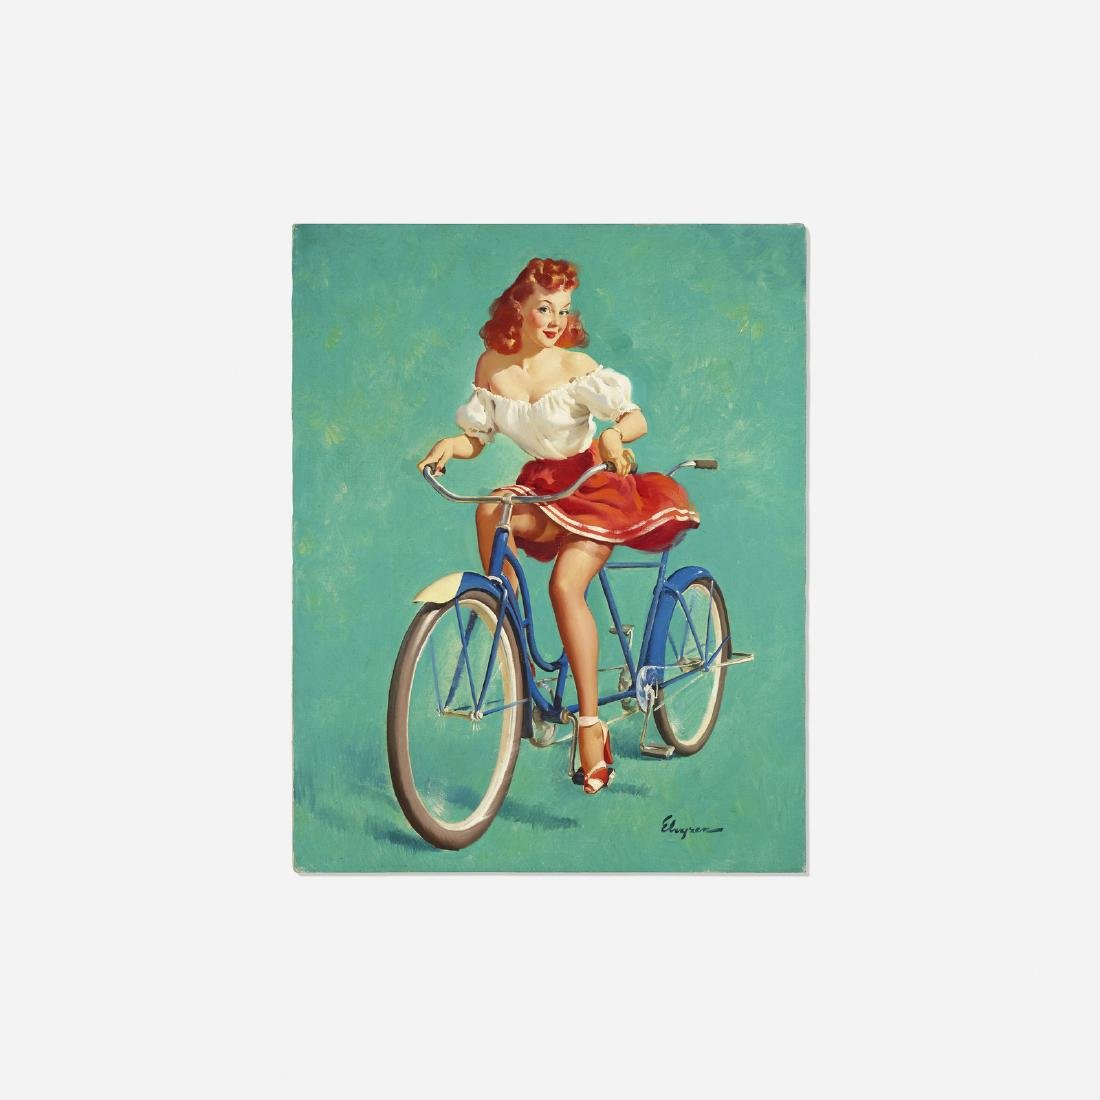 Gil Elvgren, This Bicycle's Built for Woo